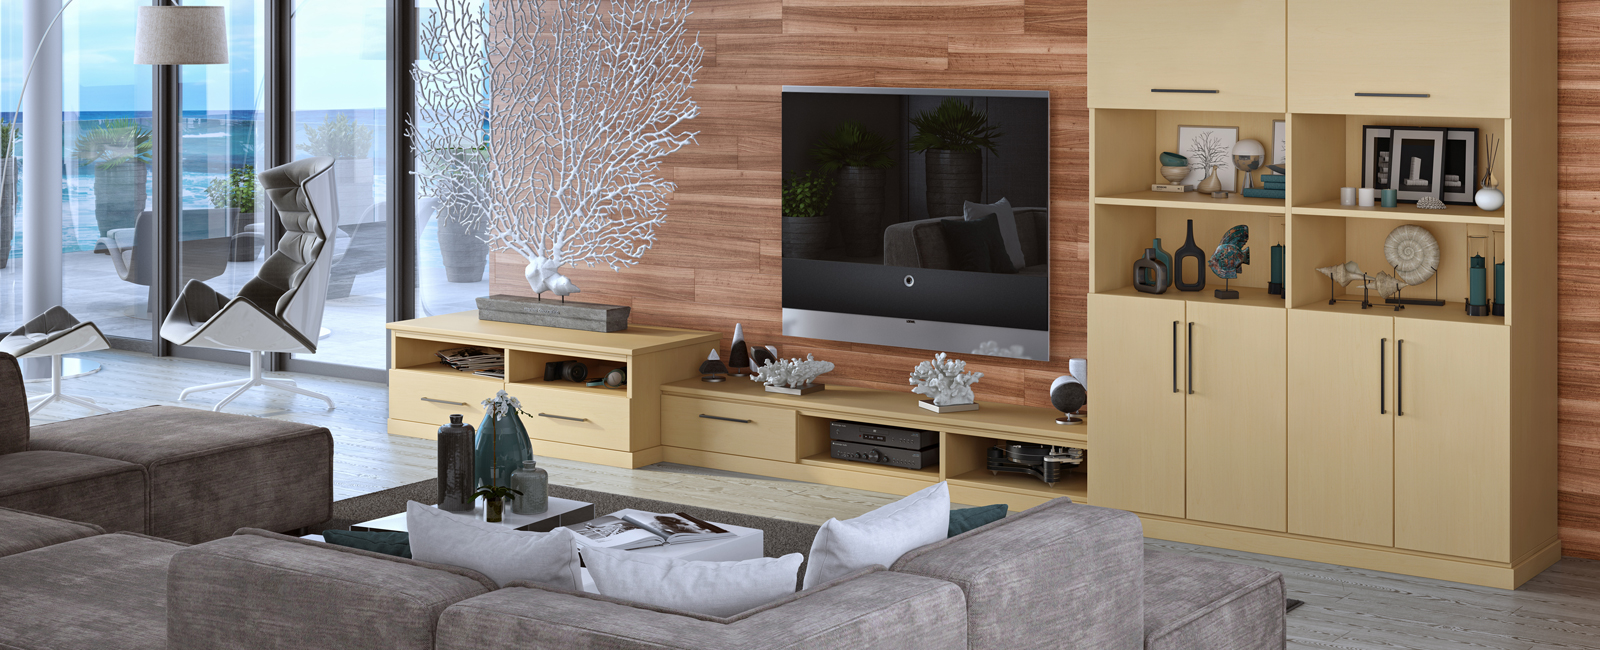 wall_unit_banner2